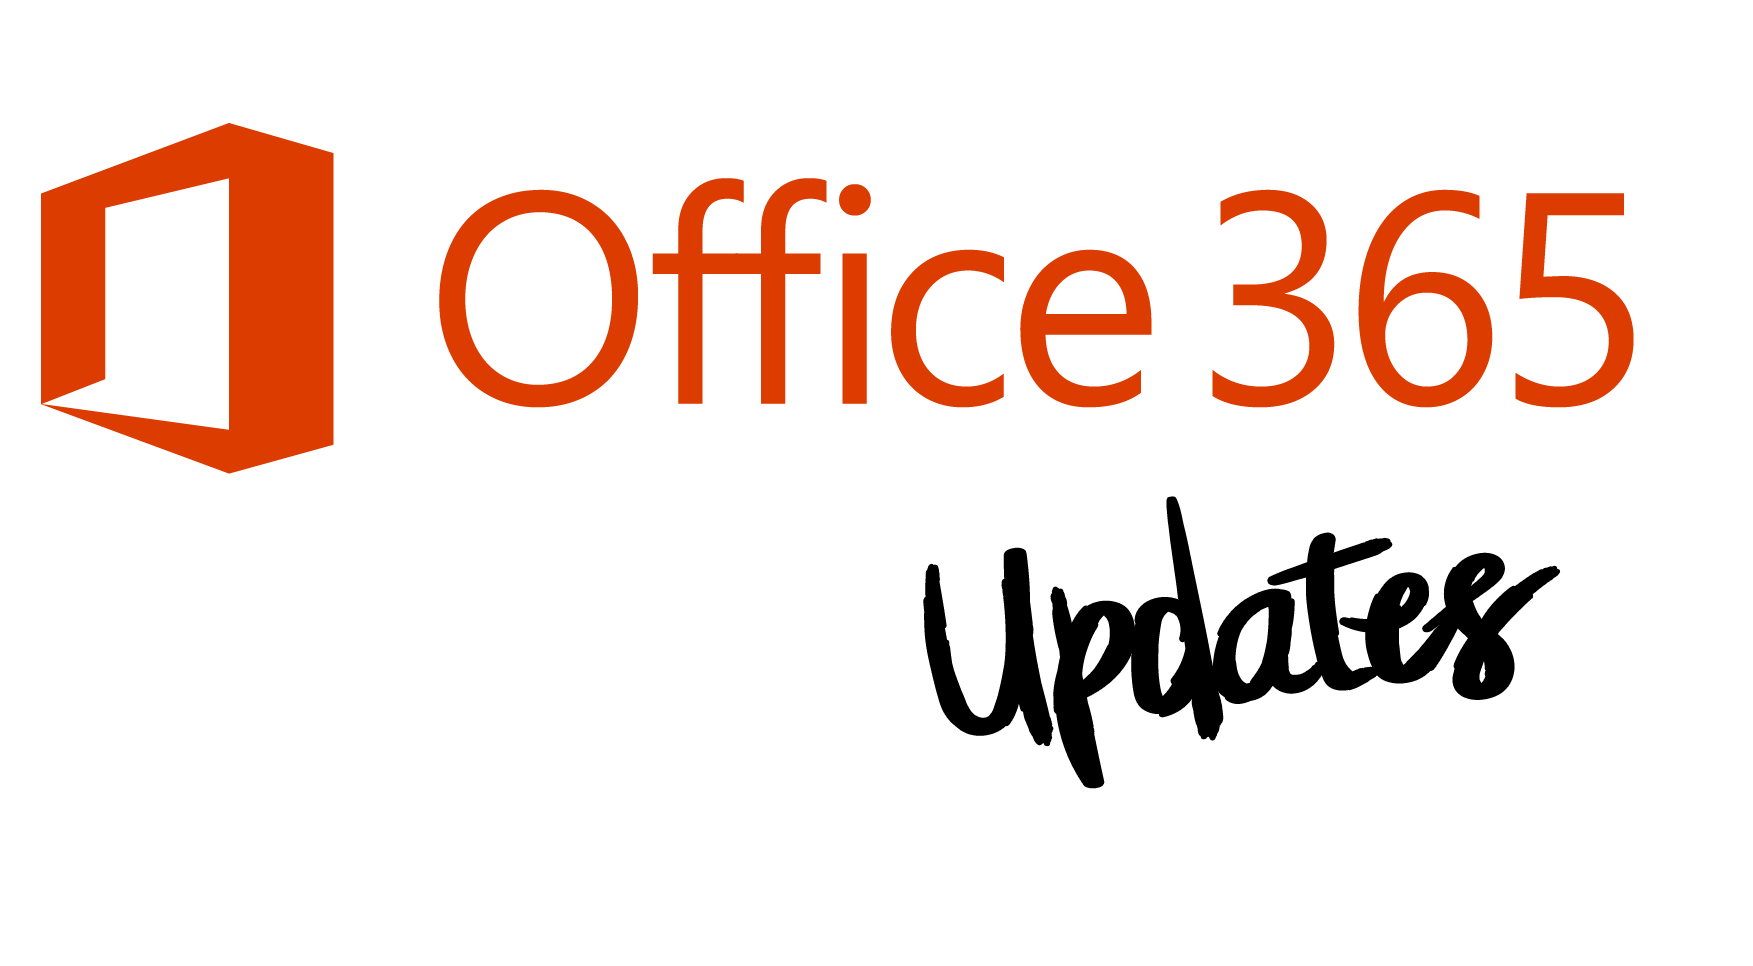 office 365 updates.png